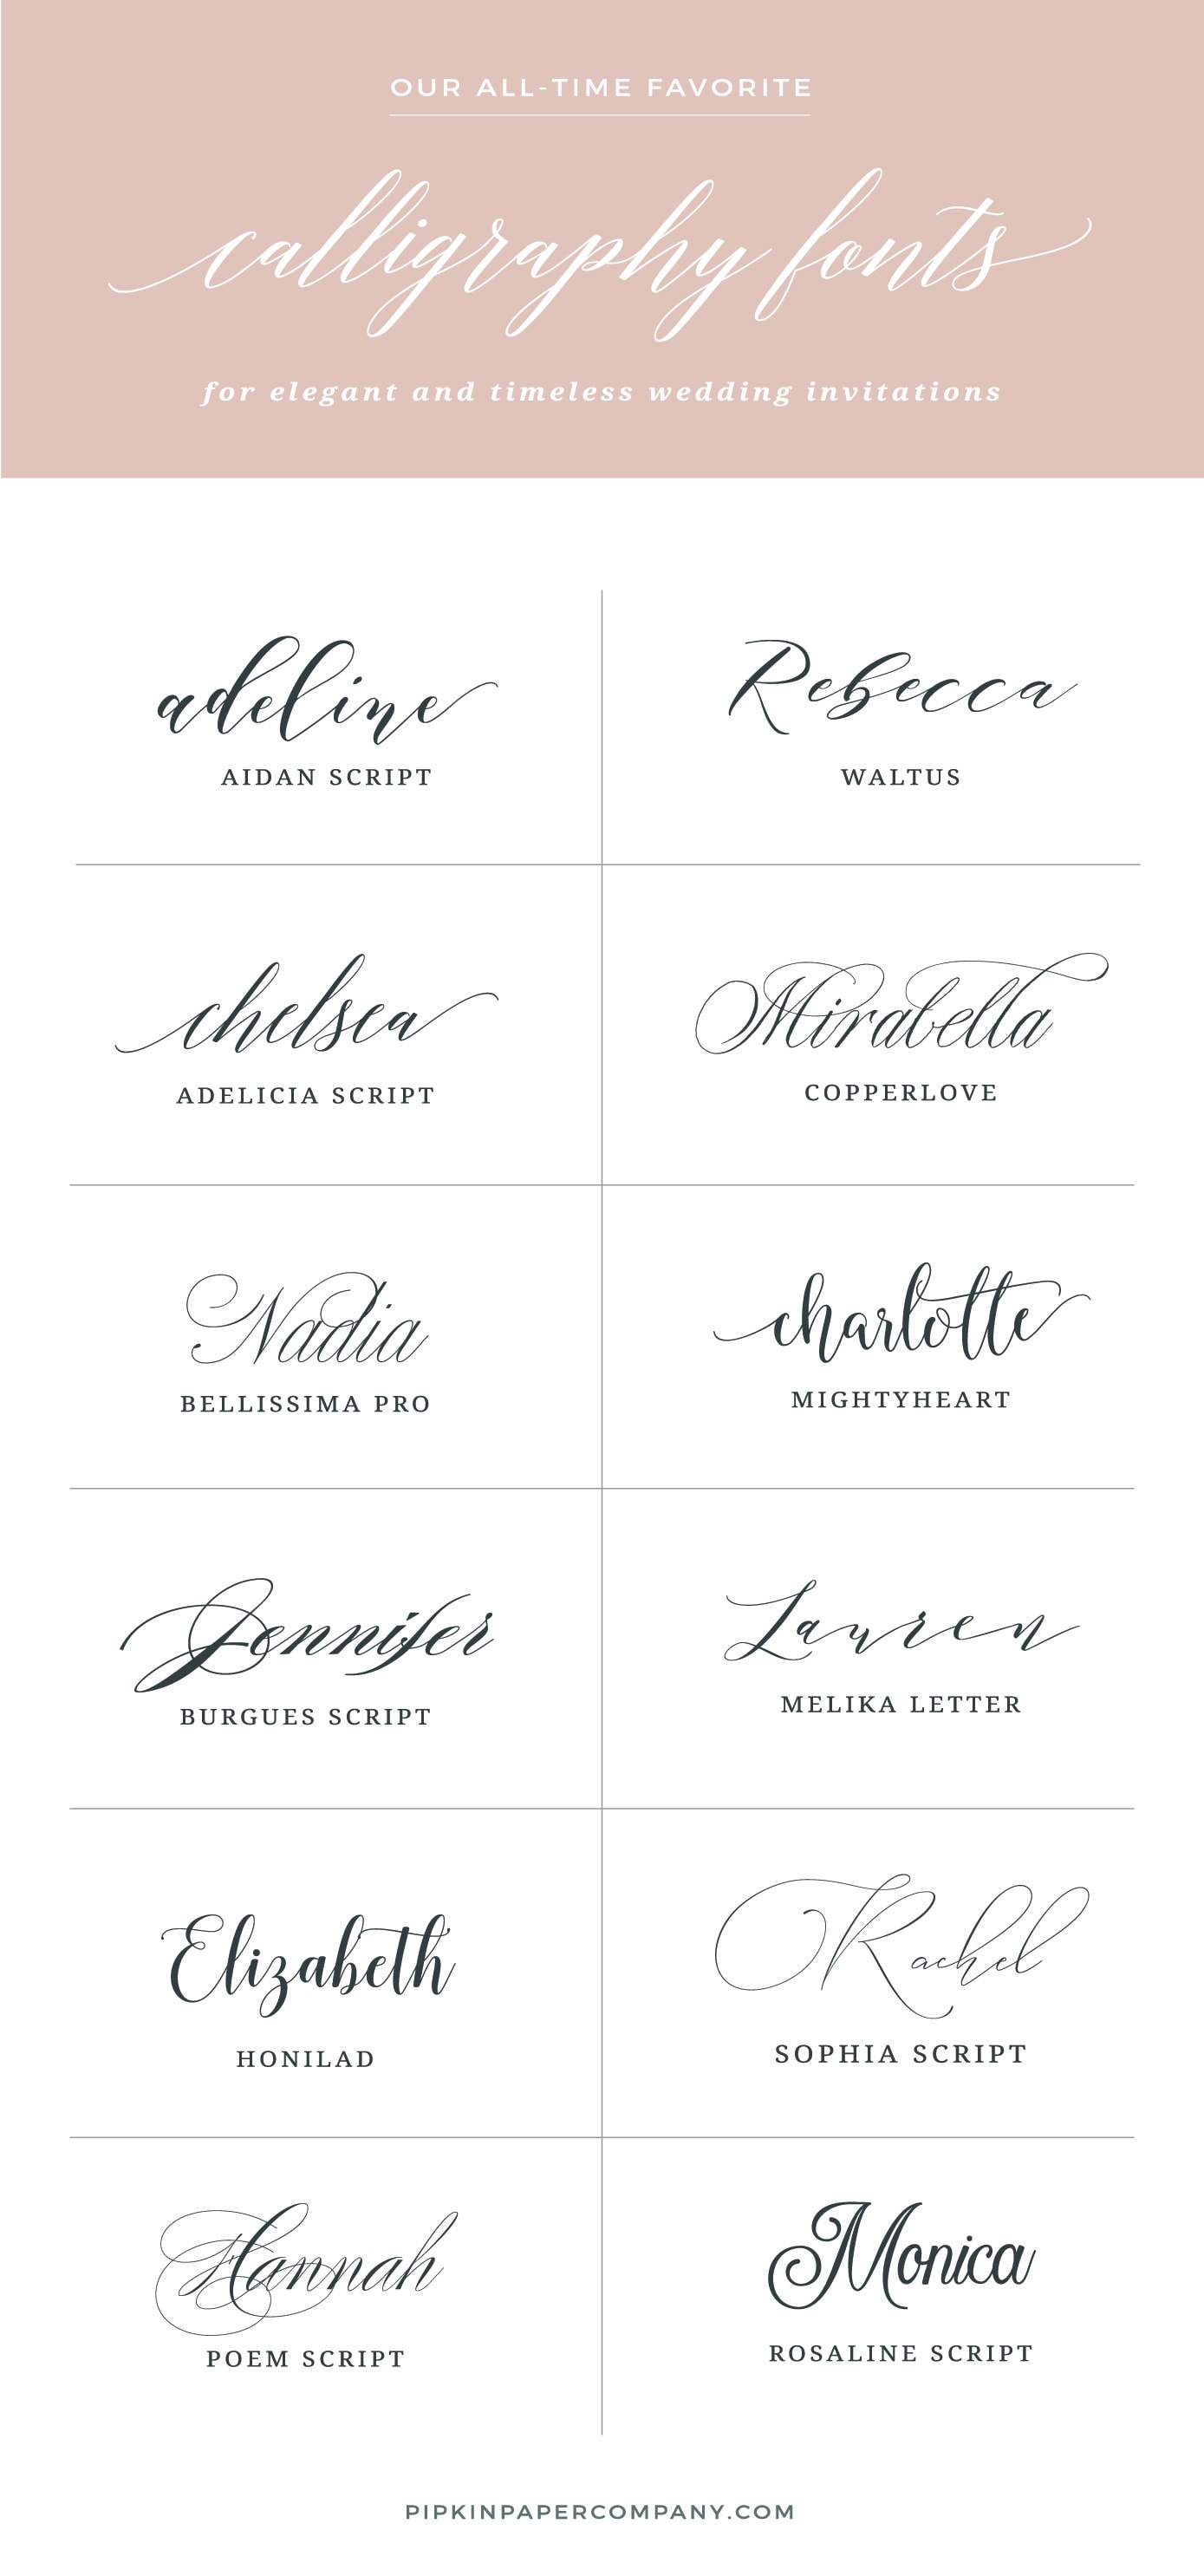 THE BEST FONTS FOR WEDDING INVITATIONS  Pipkin Paper Company